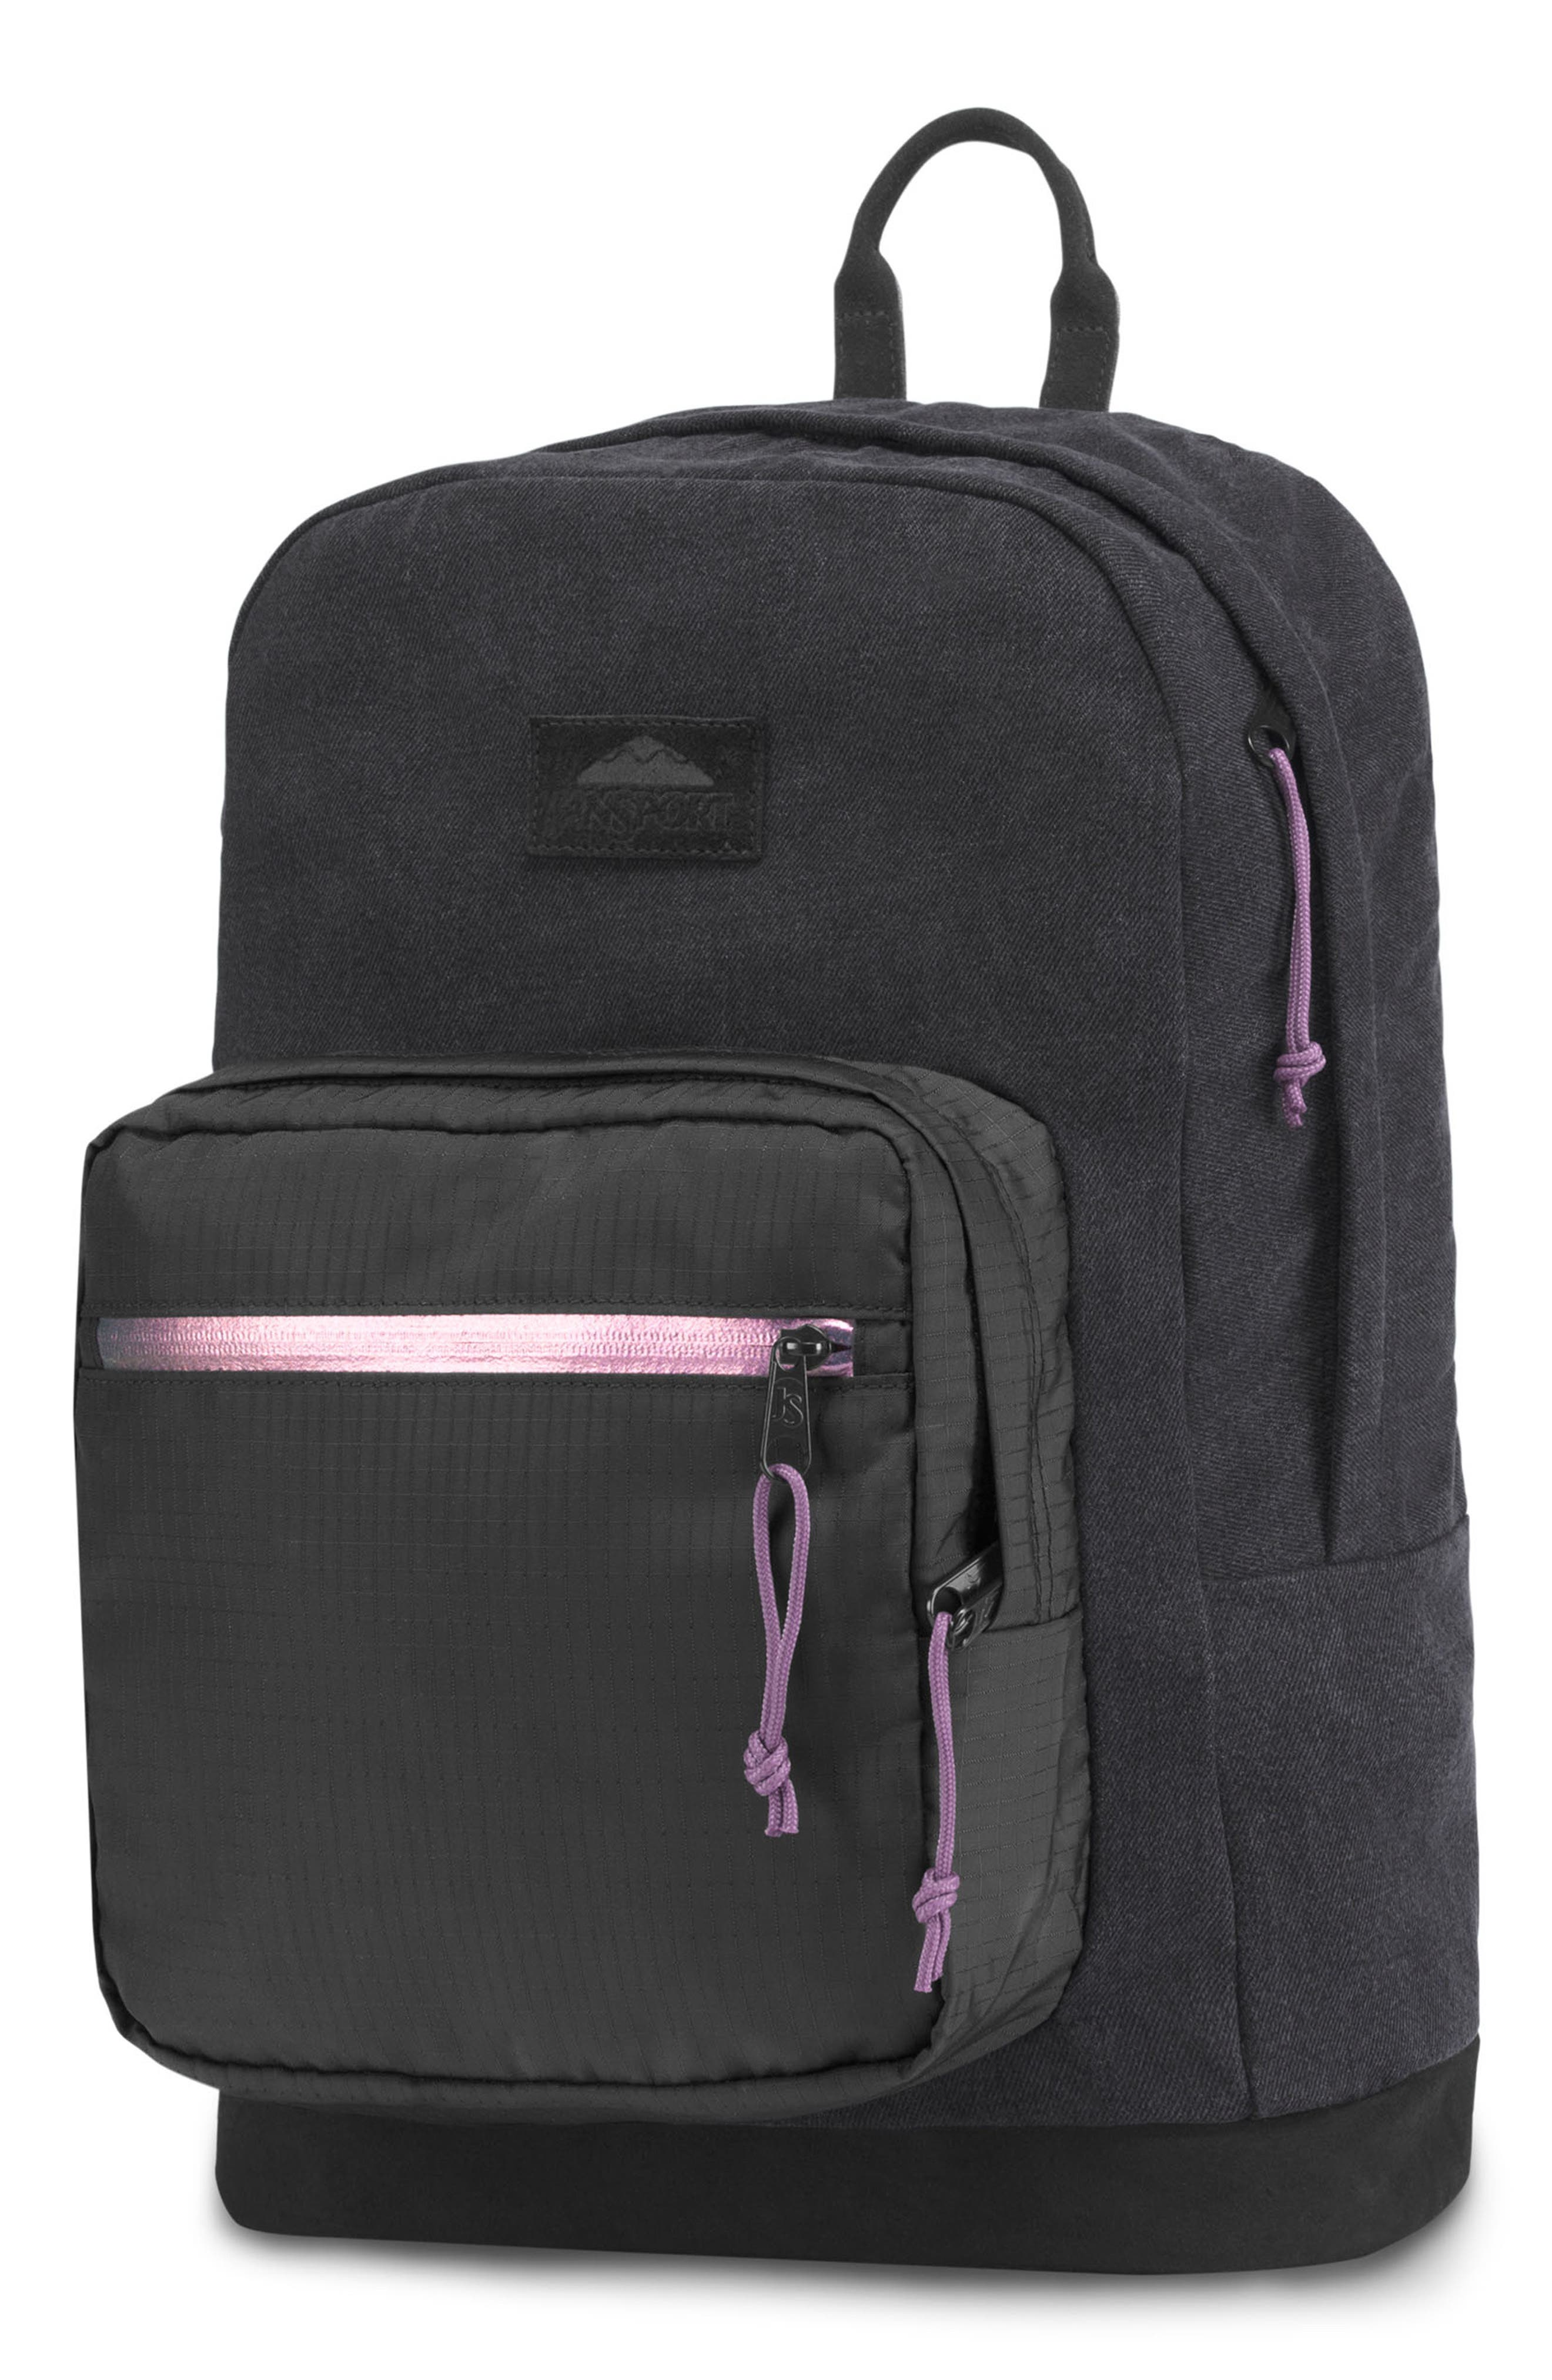 Right Pack Backpack,                             Alternate thumbnail 4, color,                             001